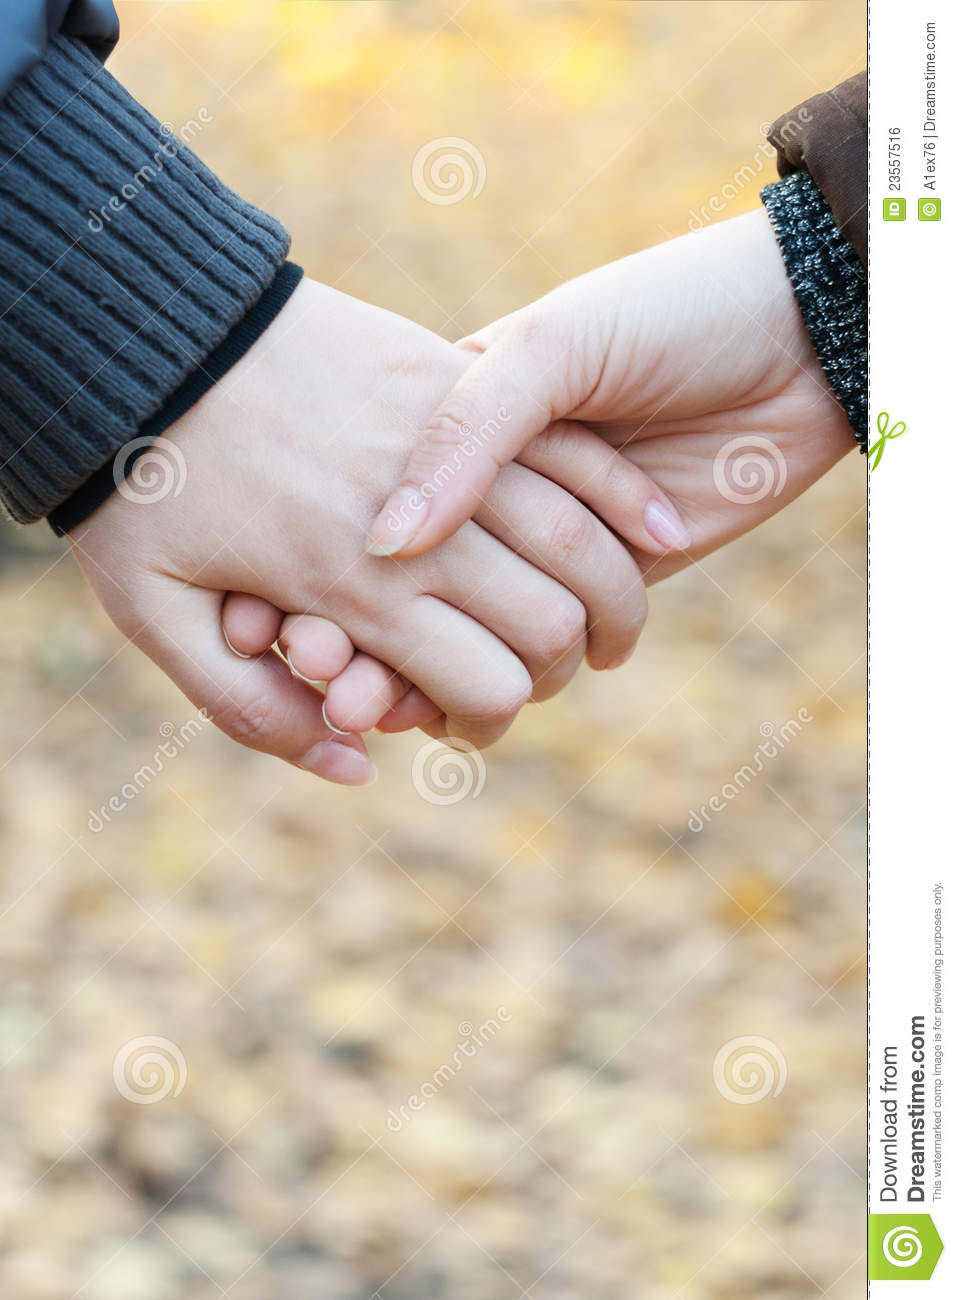 Two Girls Holding Hands Royalty Free Stock Image - Image ...